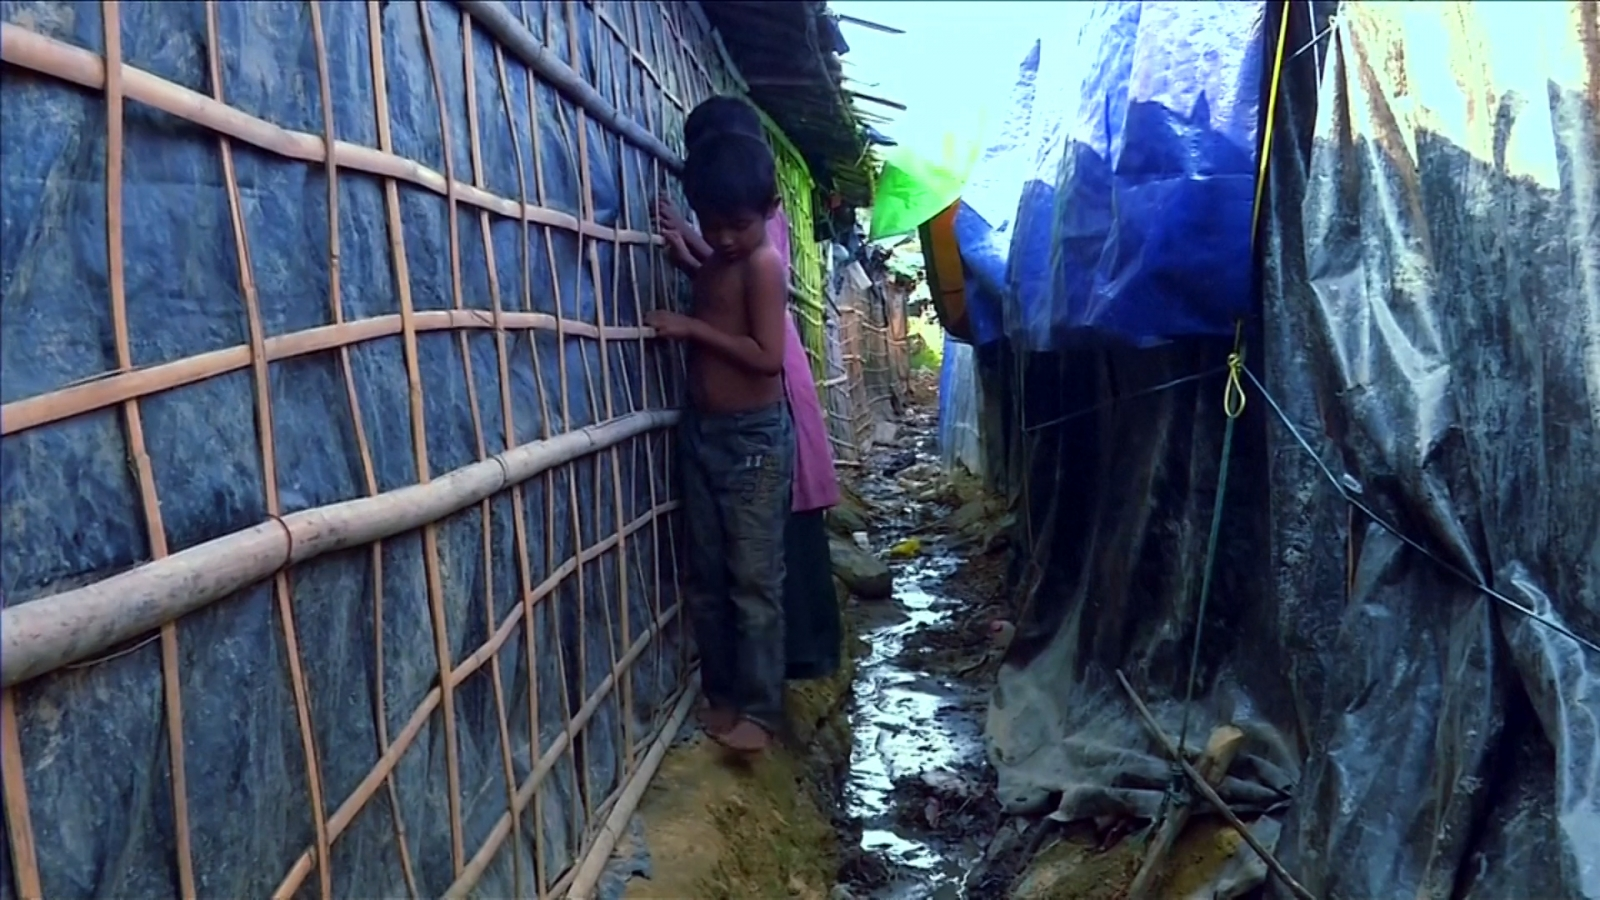 rohingya-refugees-are-living-in-dire-conditions-in-bangladesh